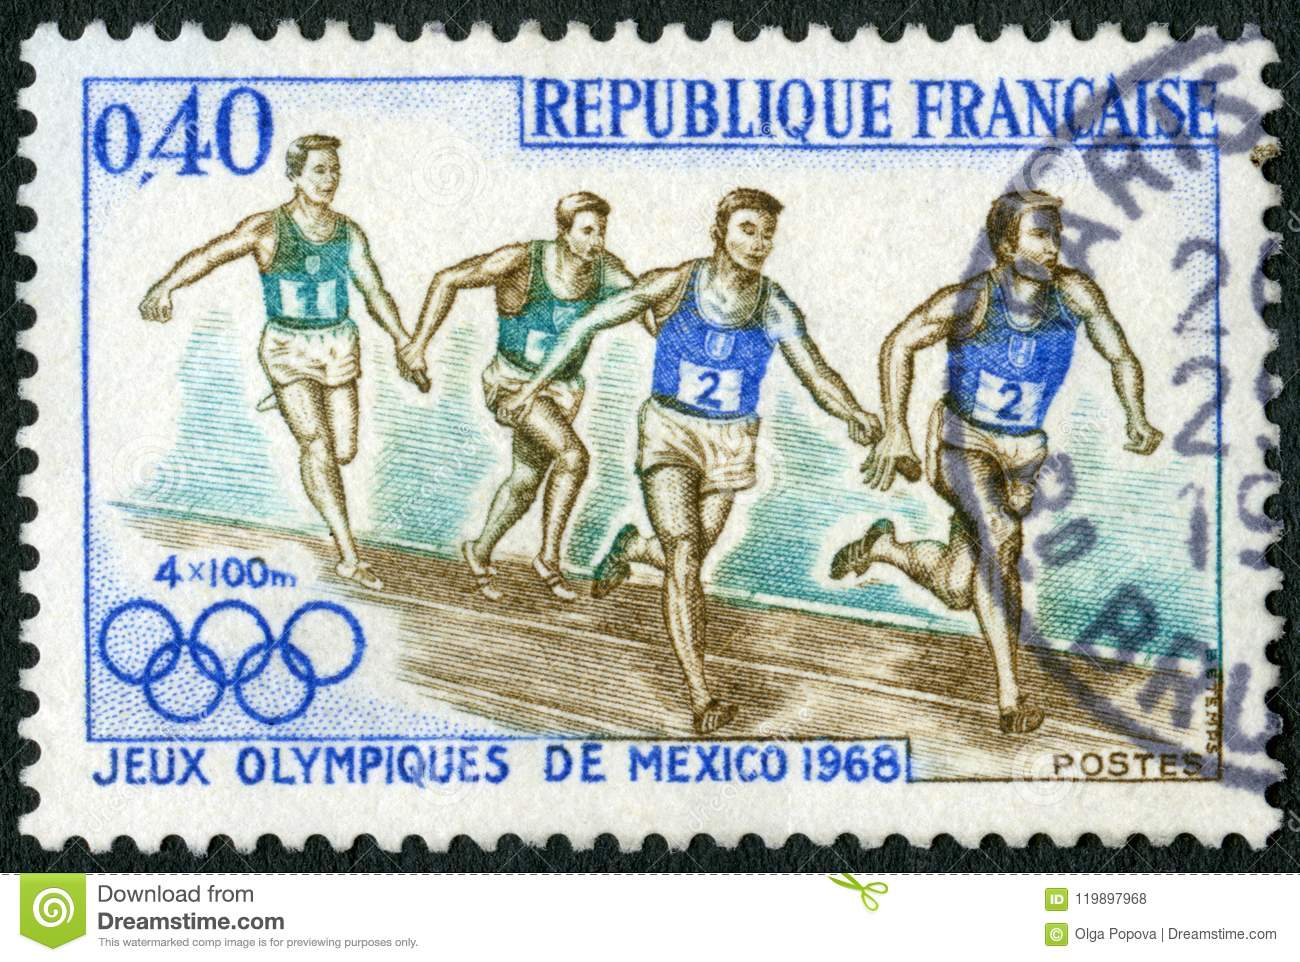 FRANCE - 1968: shows Relay Race, 19th Olympic Games, Mexico City